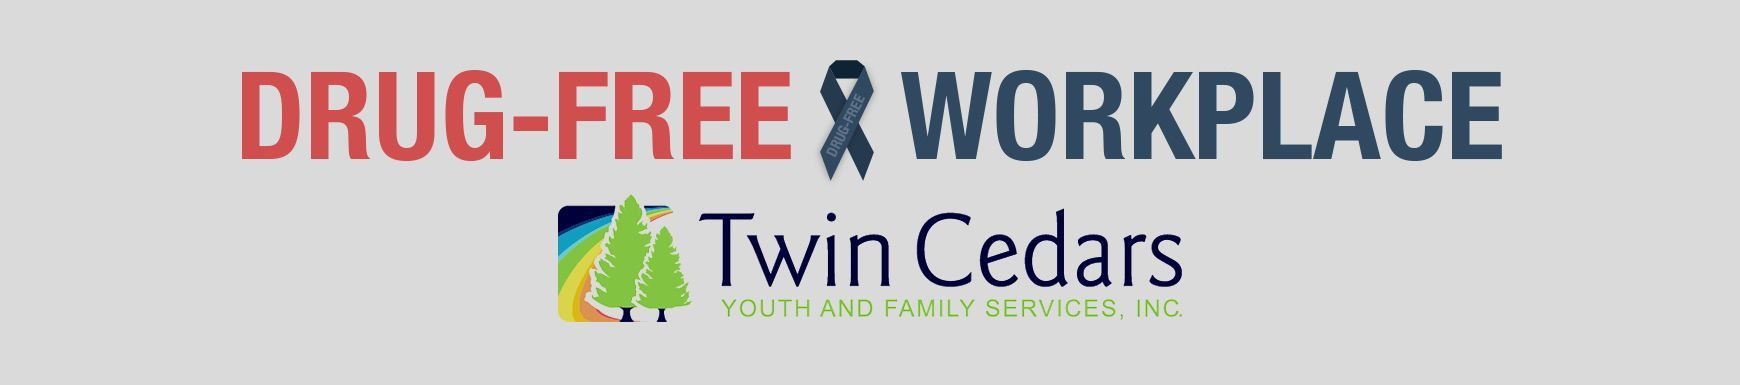 Twin Cedars DFW for Employees